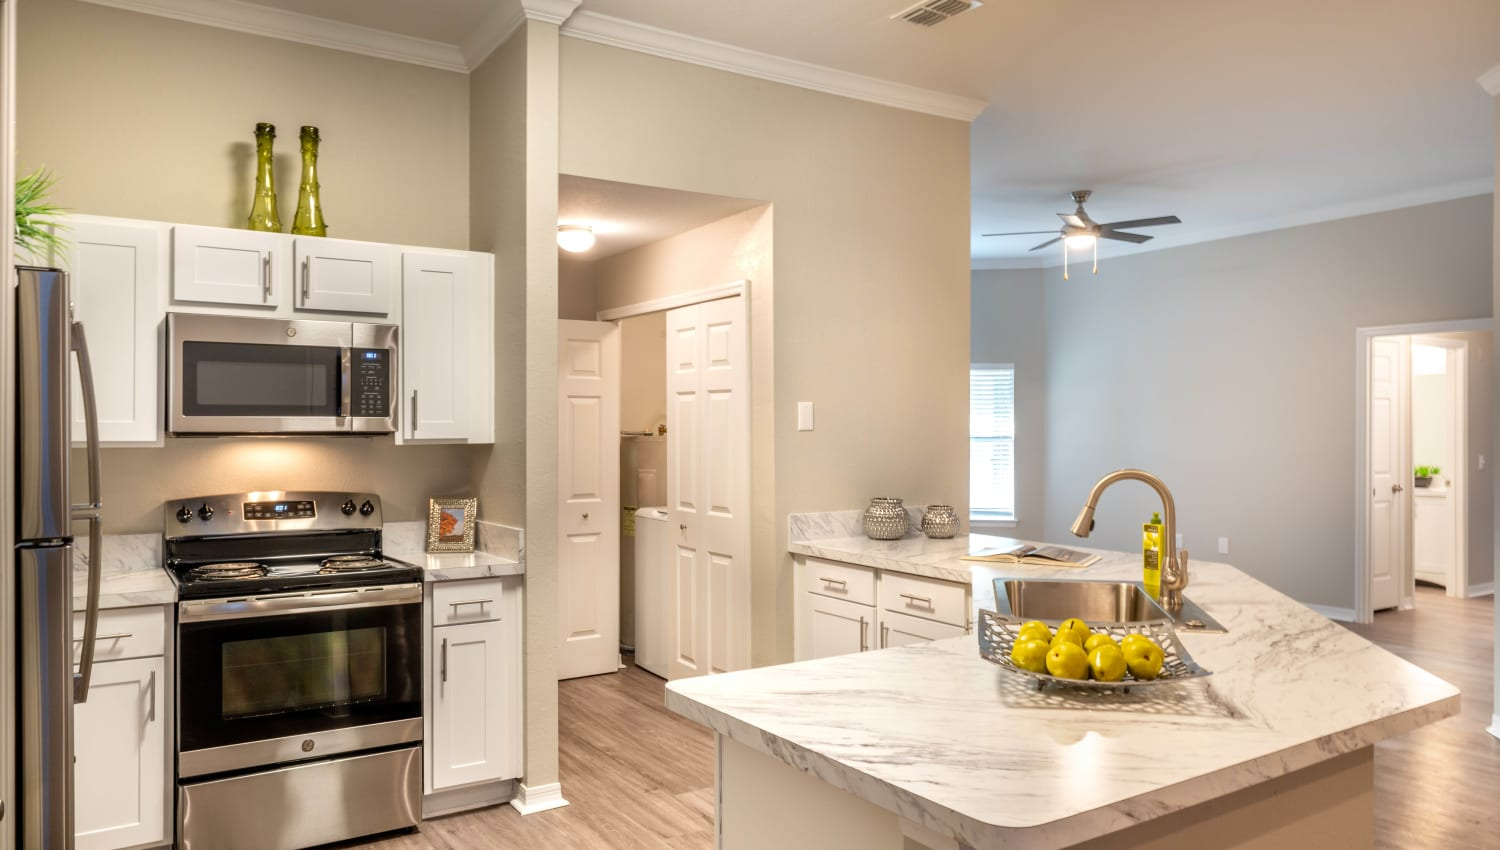 Gourmet kitchen in a model home at Cape House in Jacksonville, Florida